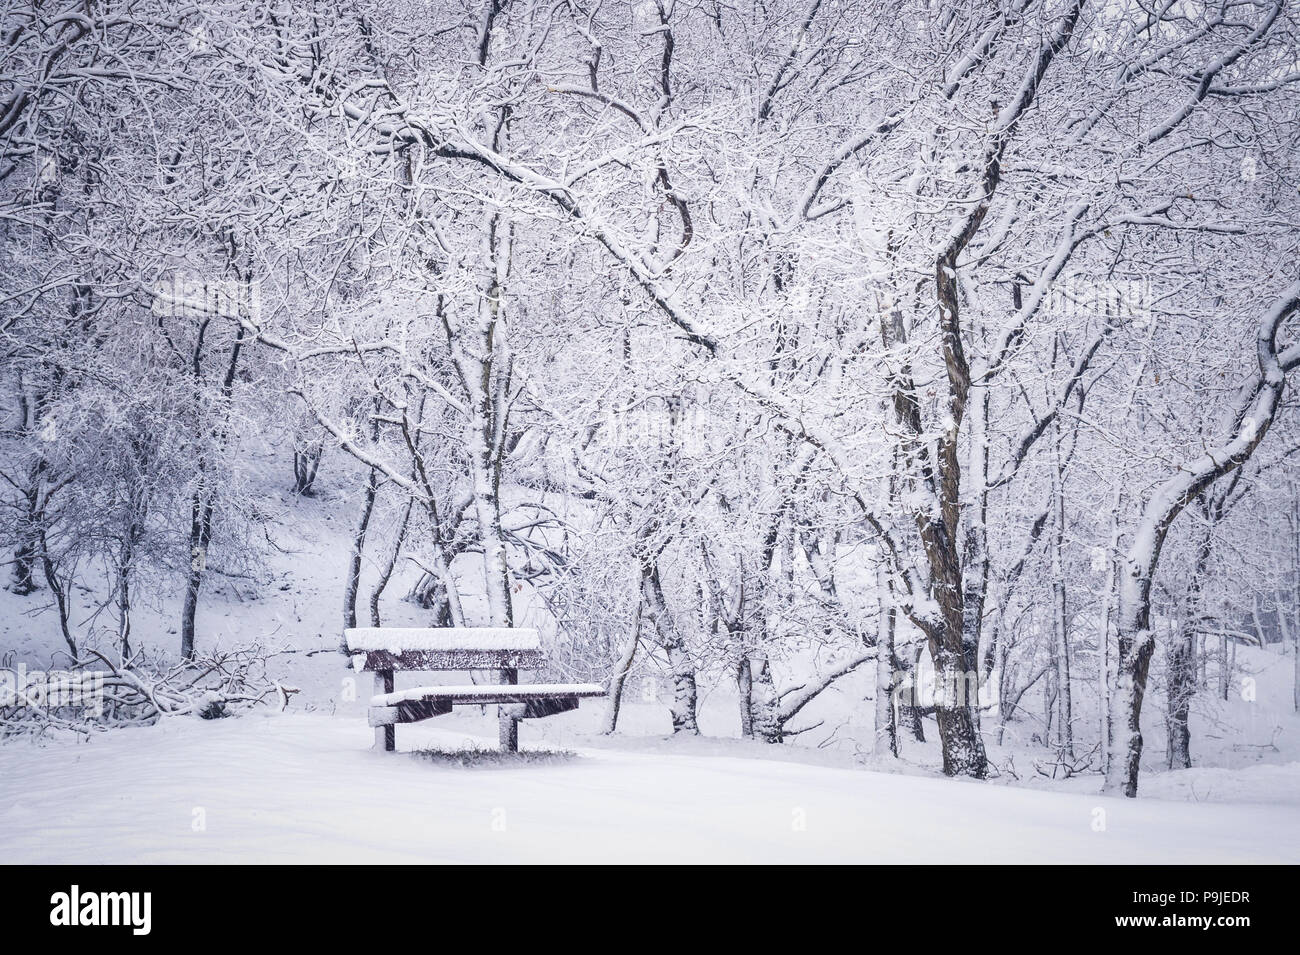 Abstract image with falling snow and bench in forest during winter, Amsterdamse waterleiding duinen, Netherlands. - Stock Image